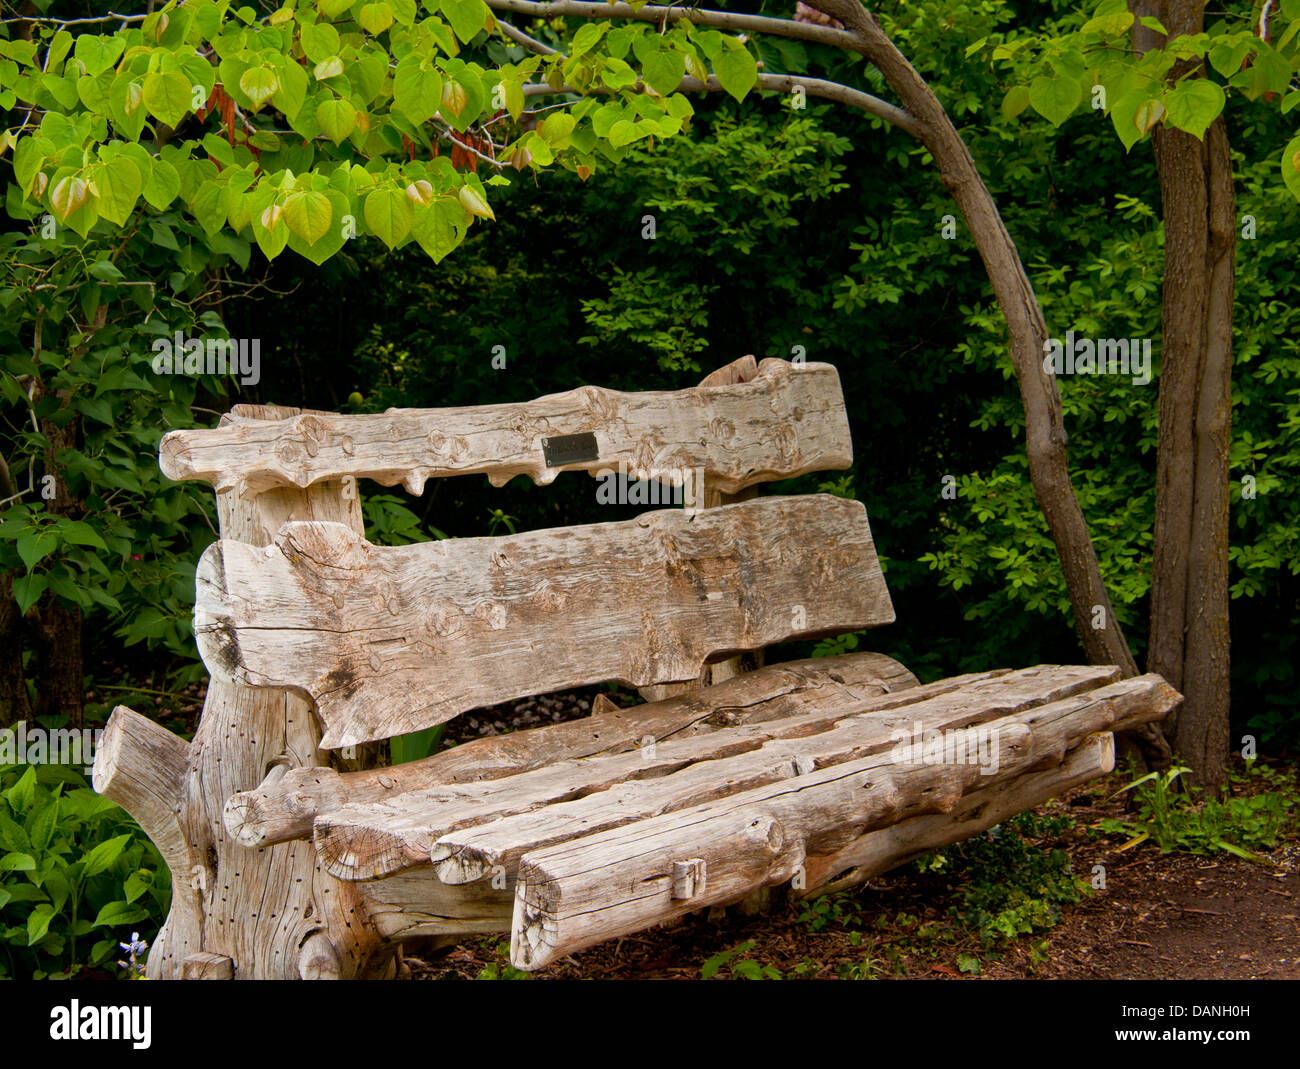 Rustic Wooden Park Bench surrounded by trees in park setting.USA - Stock Image